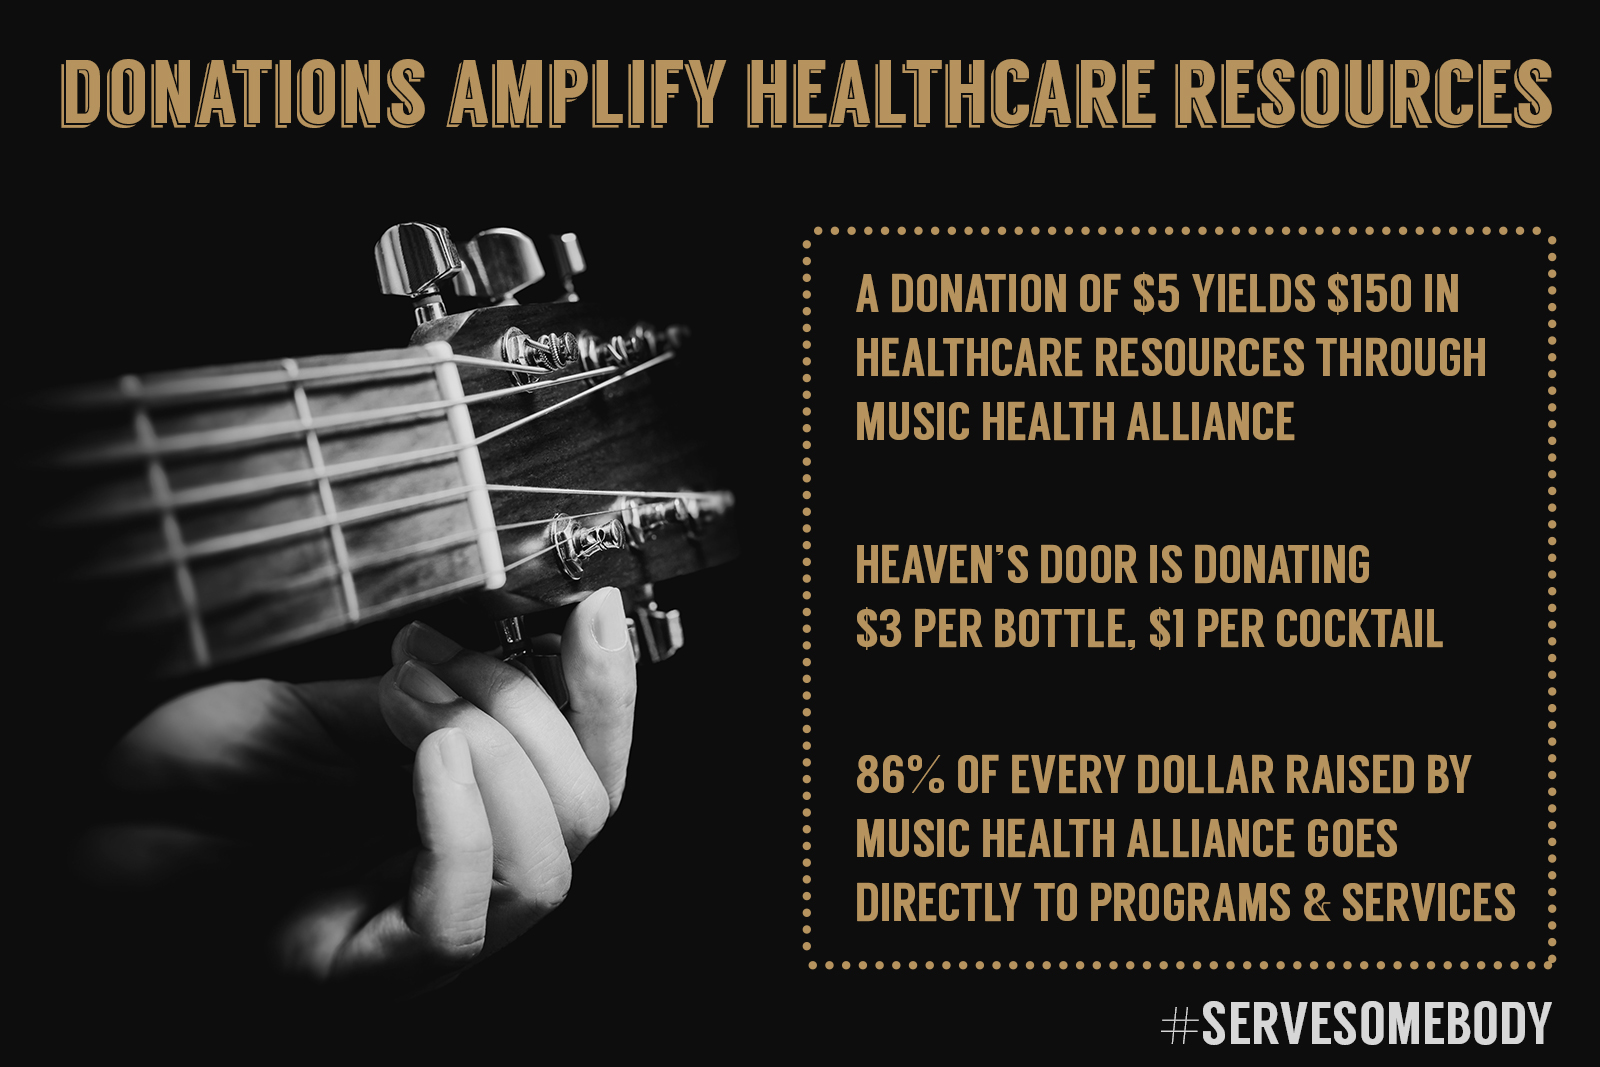 Donations amplify healthcare resources